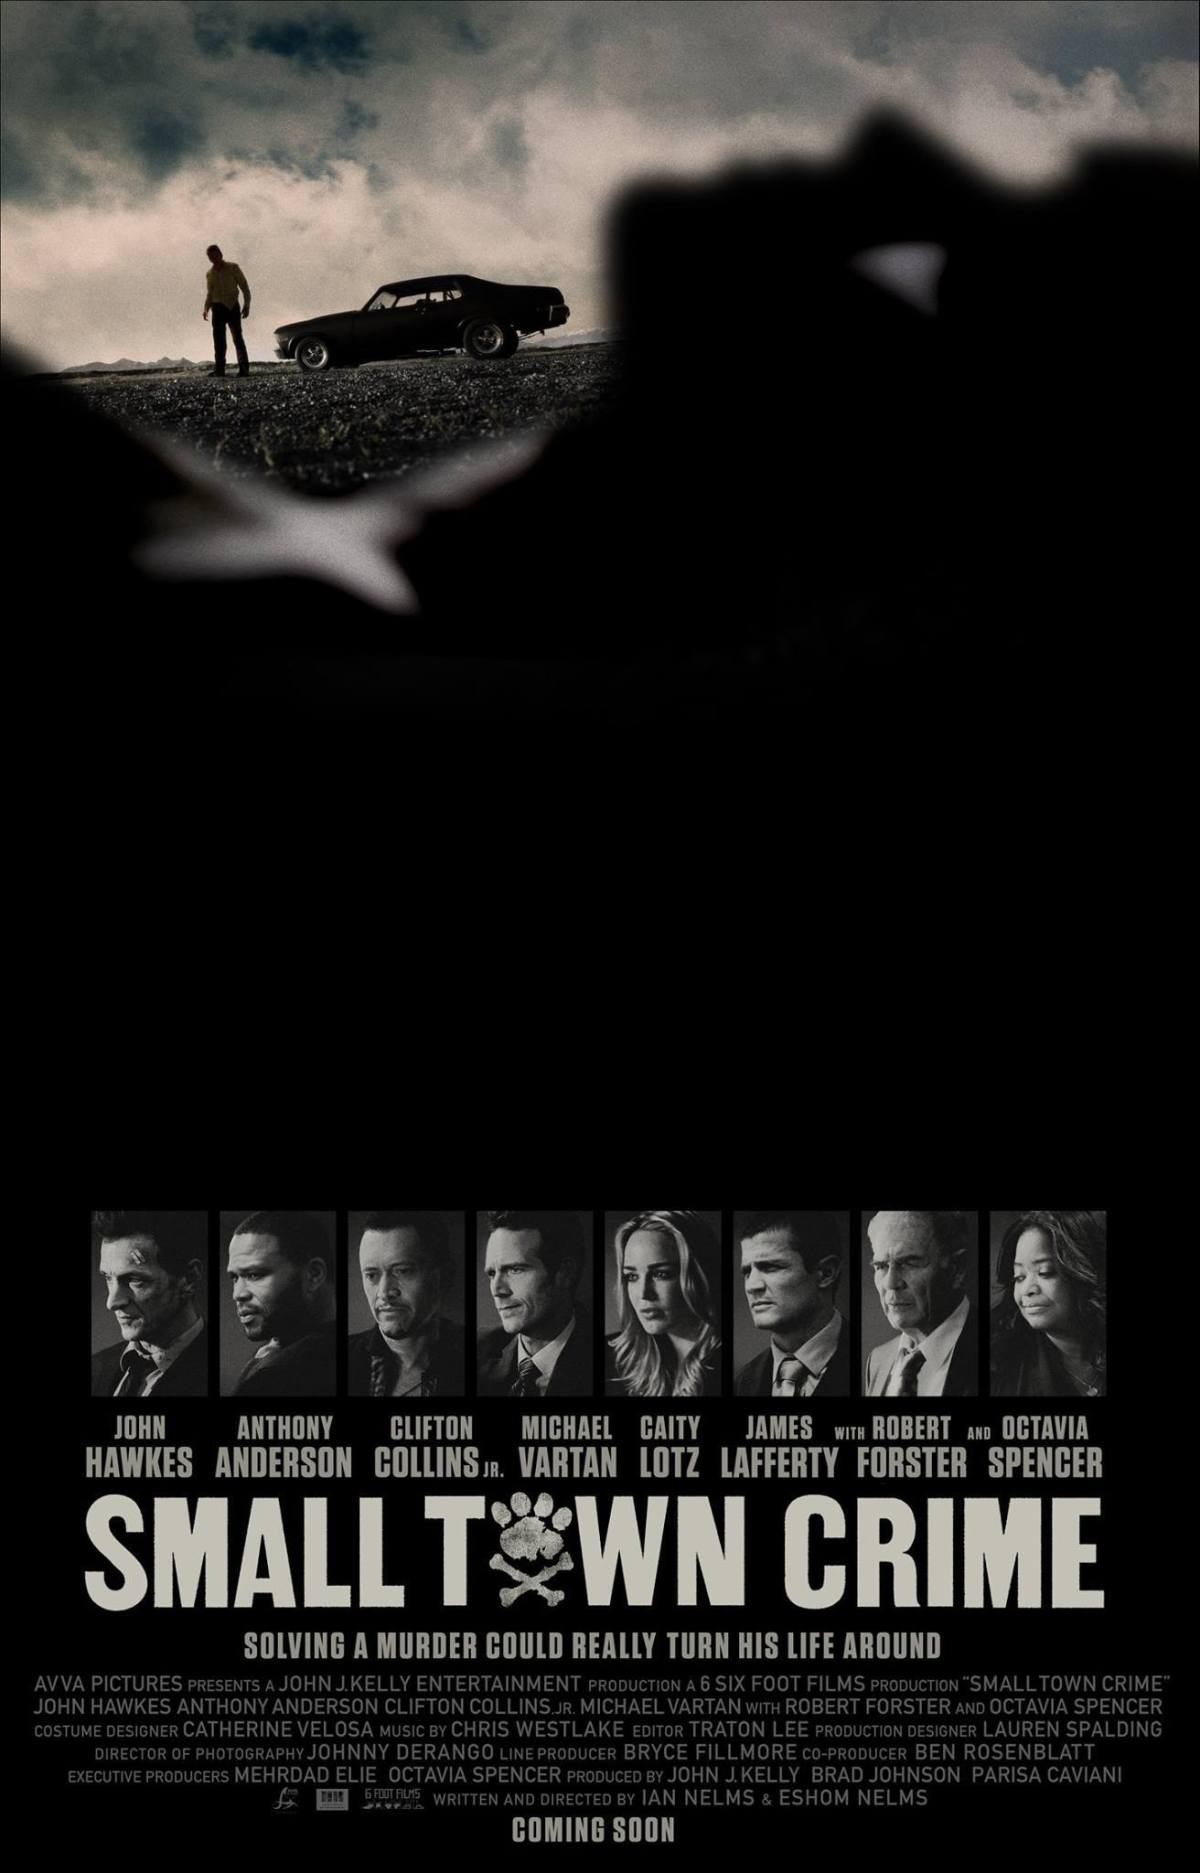 Small Town Crime (2017, dir. Eshom Nelms, Ian Nelms)